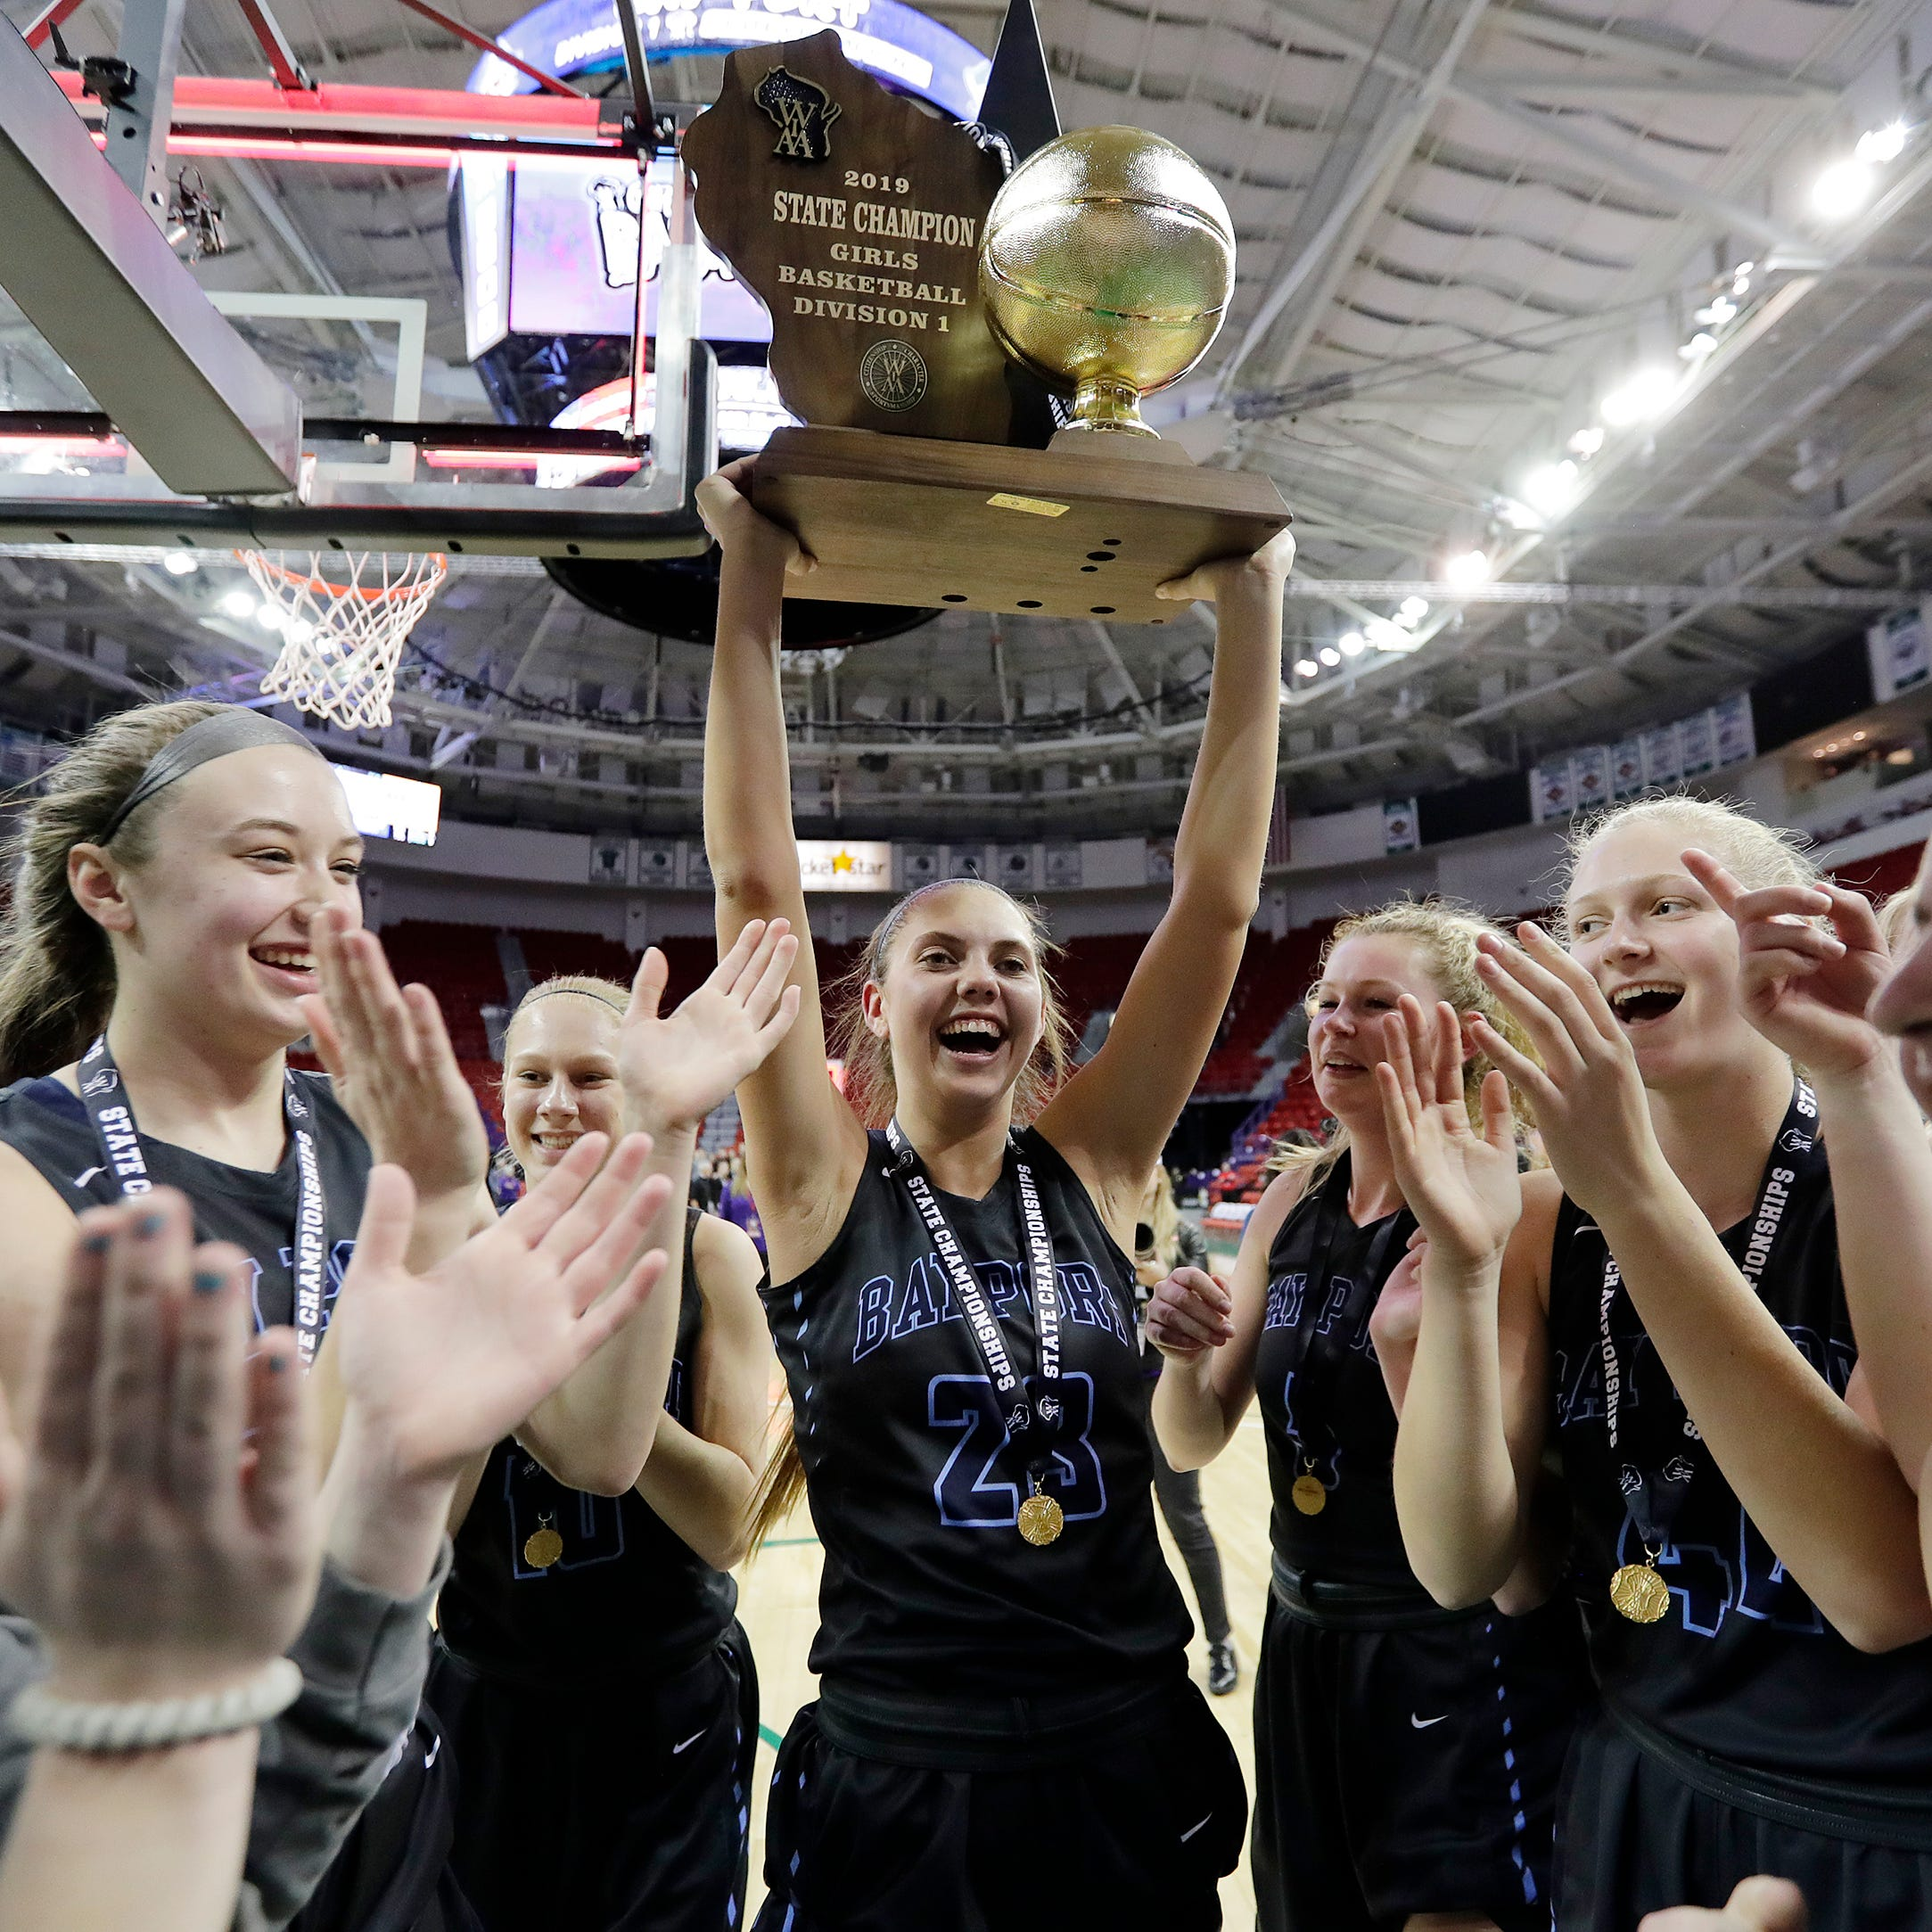 Arguello: Top 10 things to take away from high school winter season